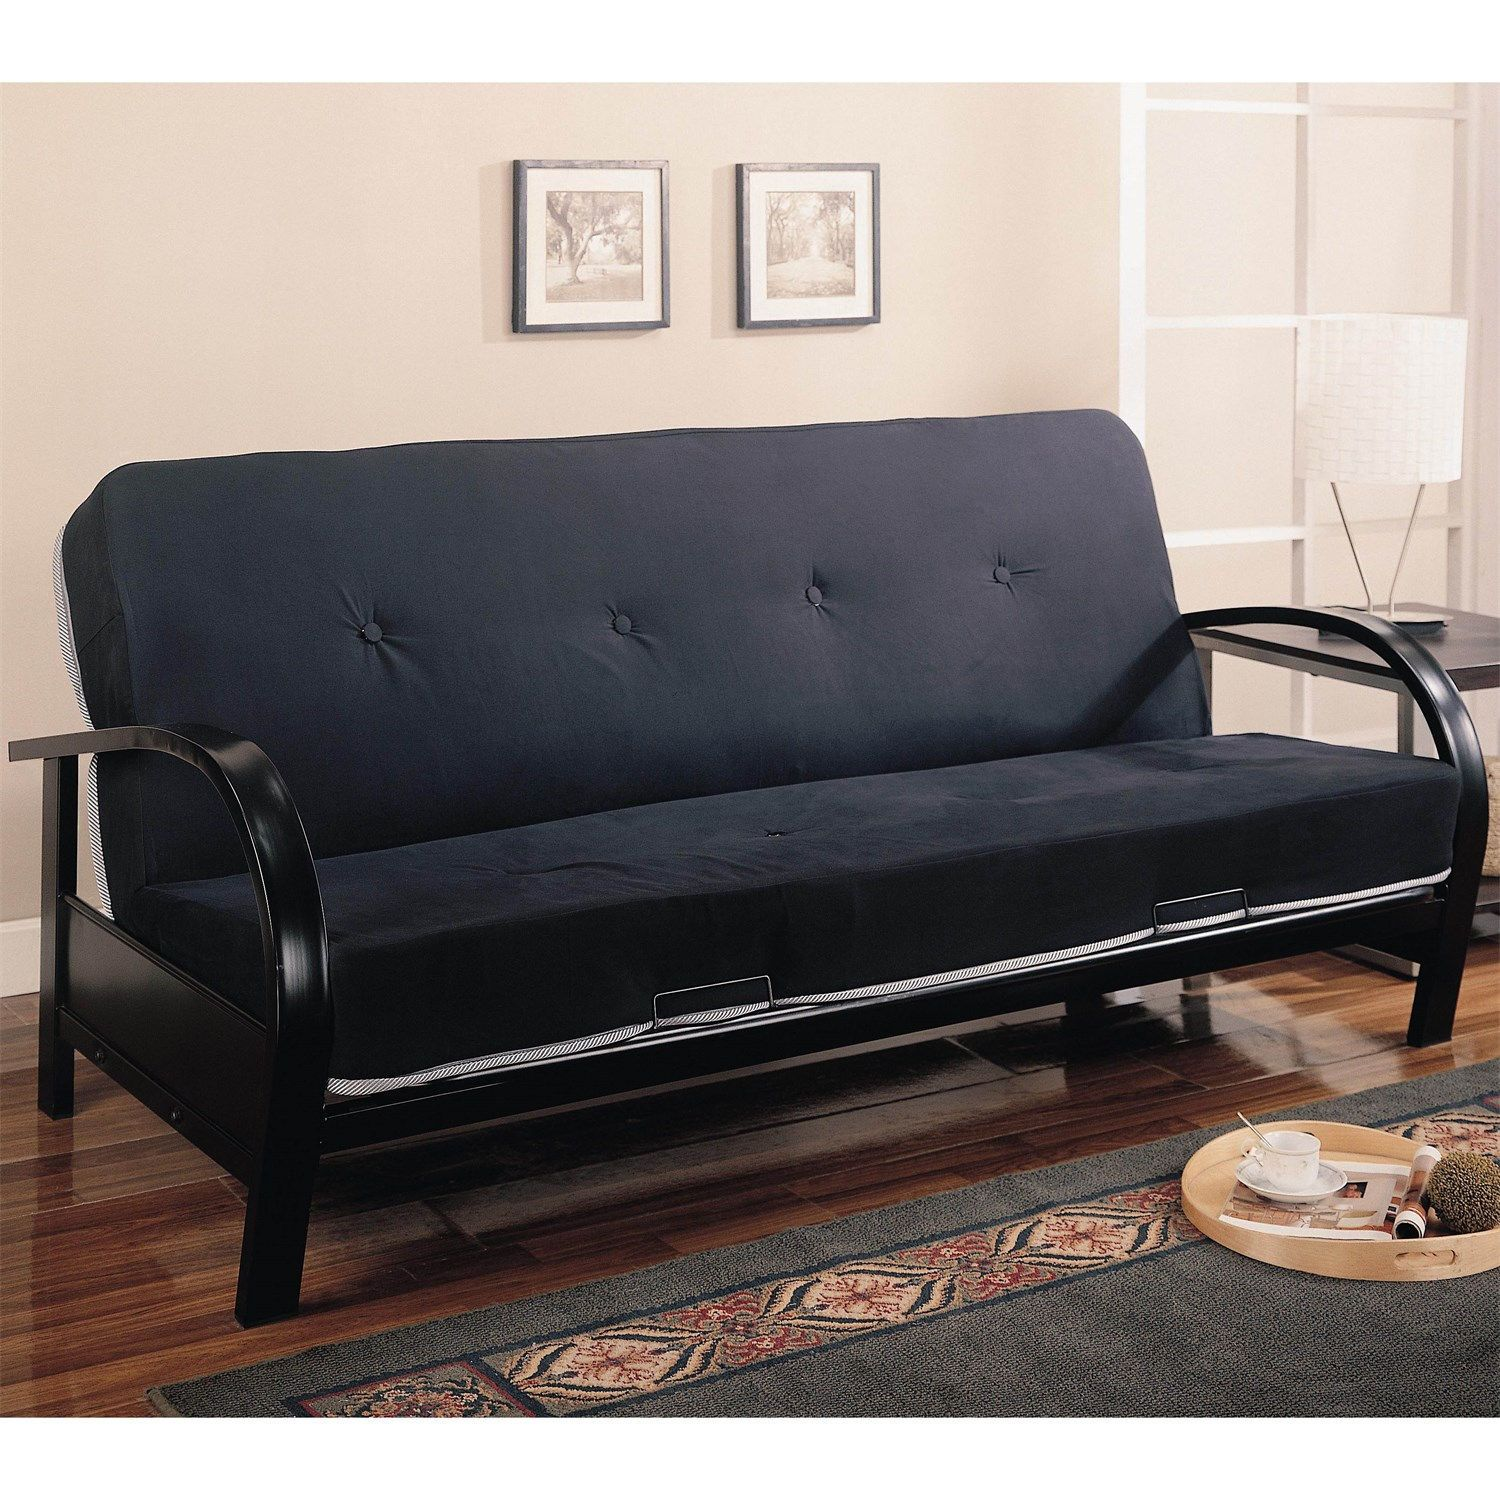 futons wood frame westfield dining metal size nirvana com dp nowful full kitchen black amazon futon